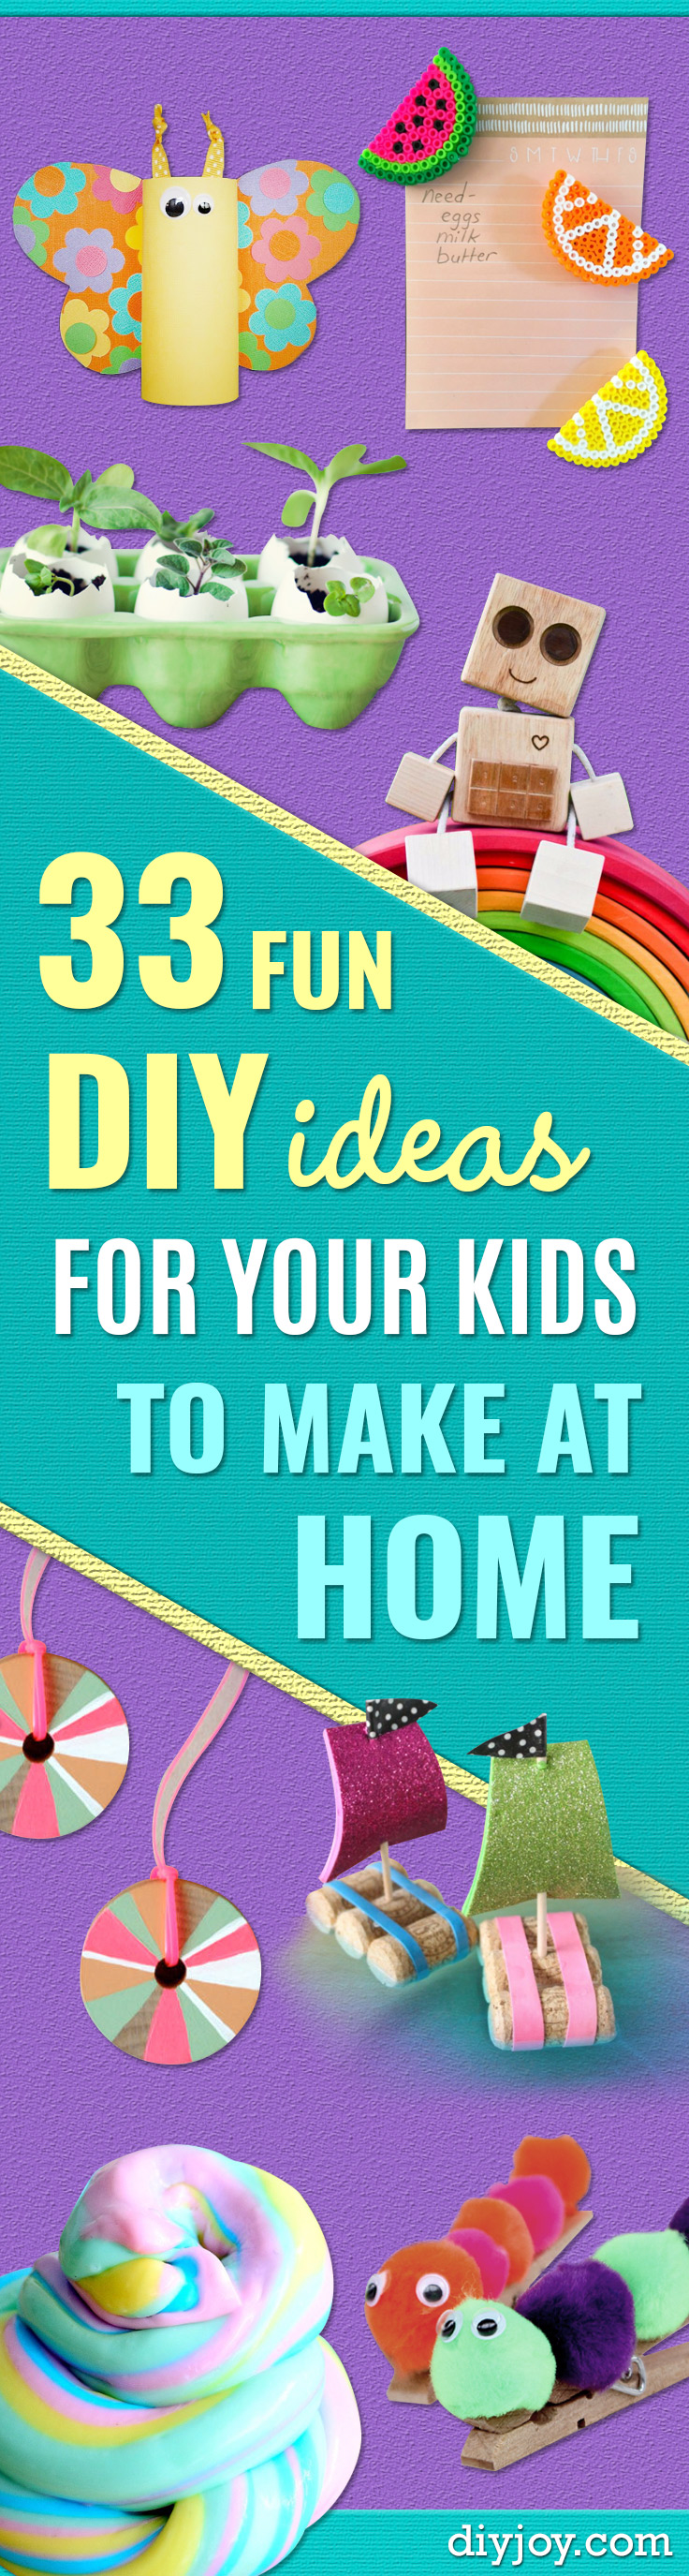 33 Diy Ideas For The Kids To Make At Home Easy Diy Kids Crafts